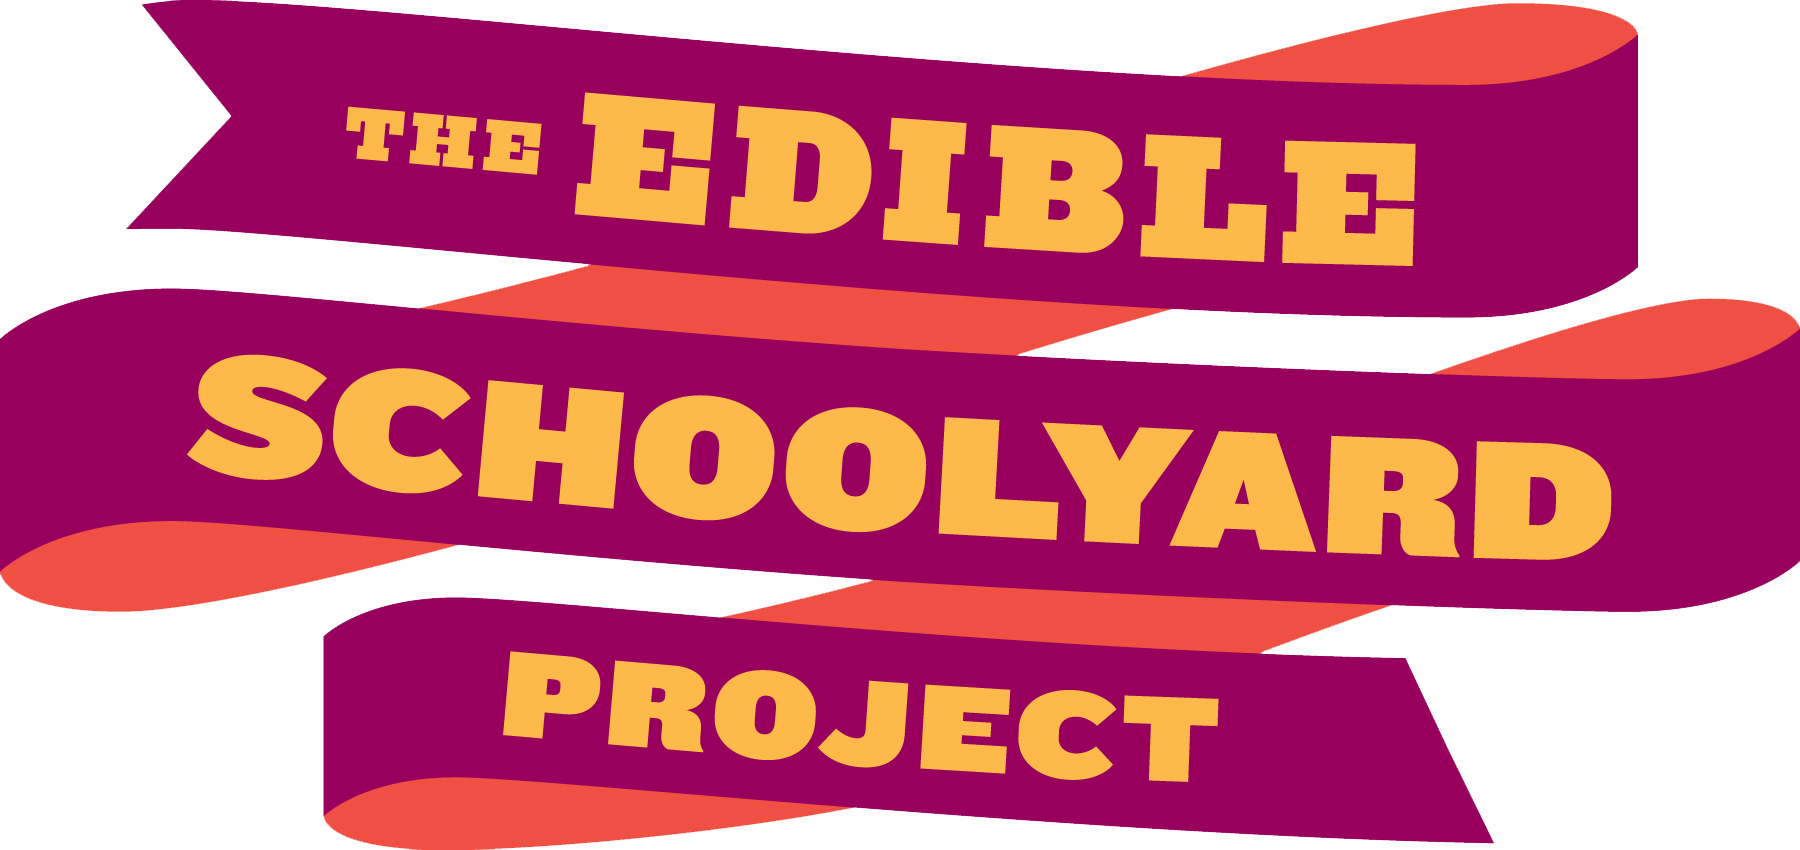 THE EDIBLE SCHOOLYARD PROJECT RESOURCES